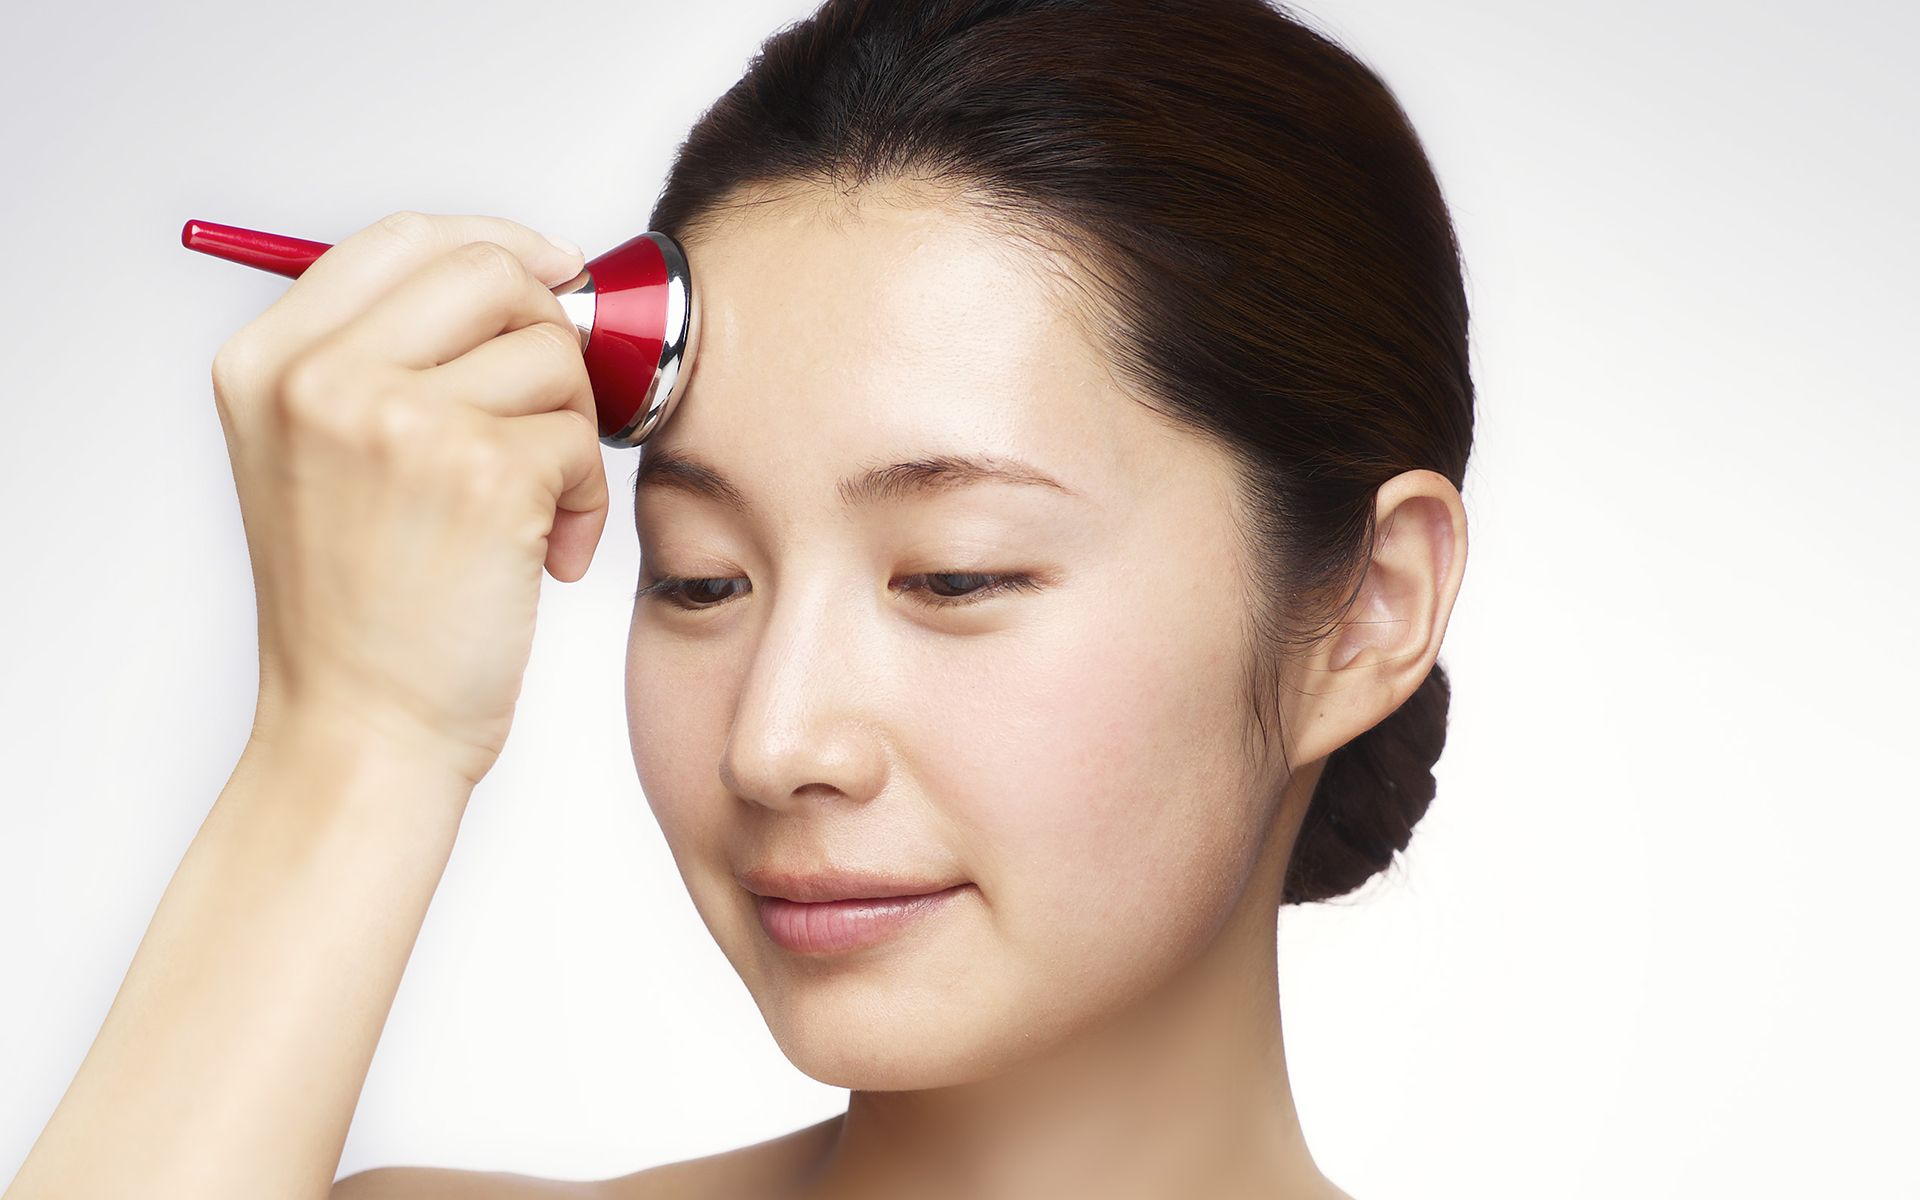 5 High-Performance Treatments To Shortcut Your Beauty Routine